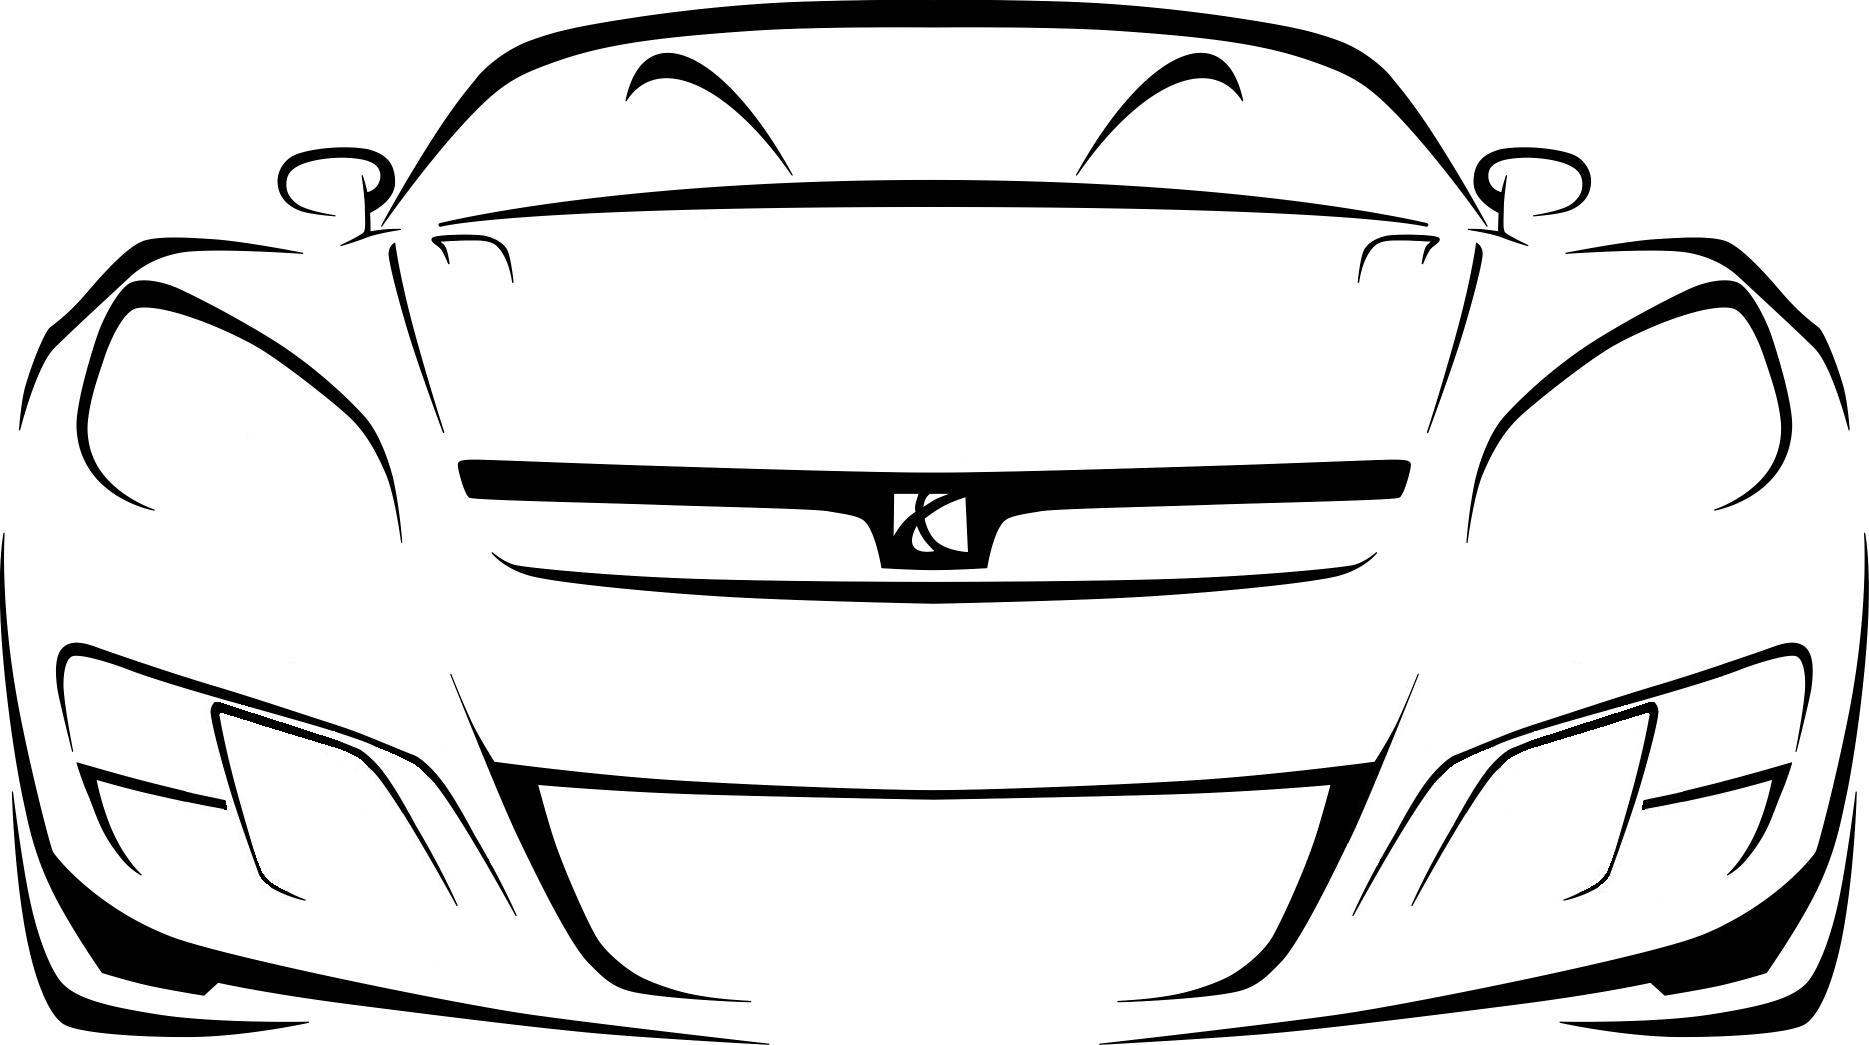 Free Truck Outline Download Free Clip Art Free Clip Art